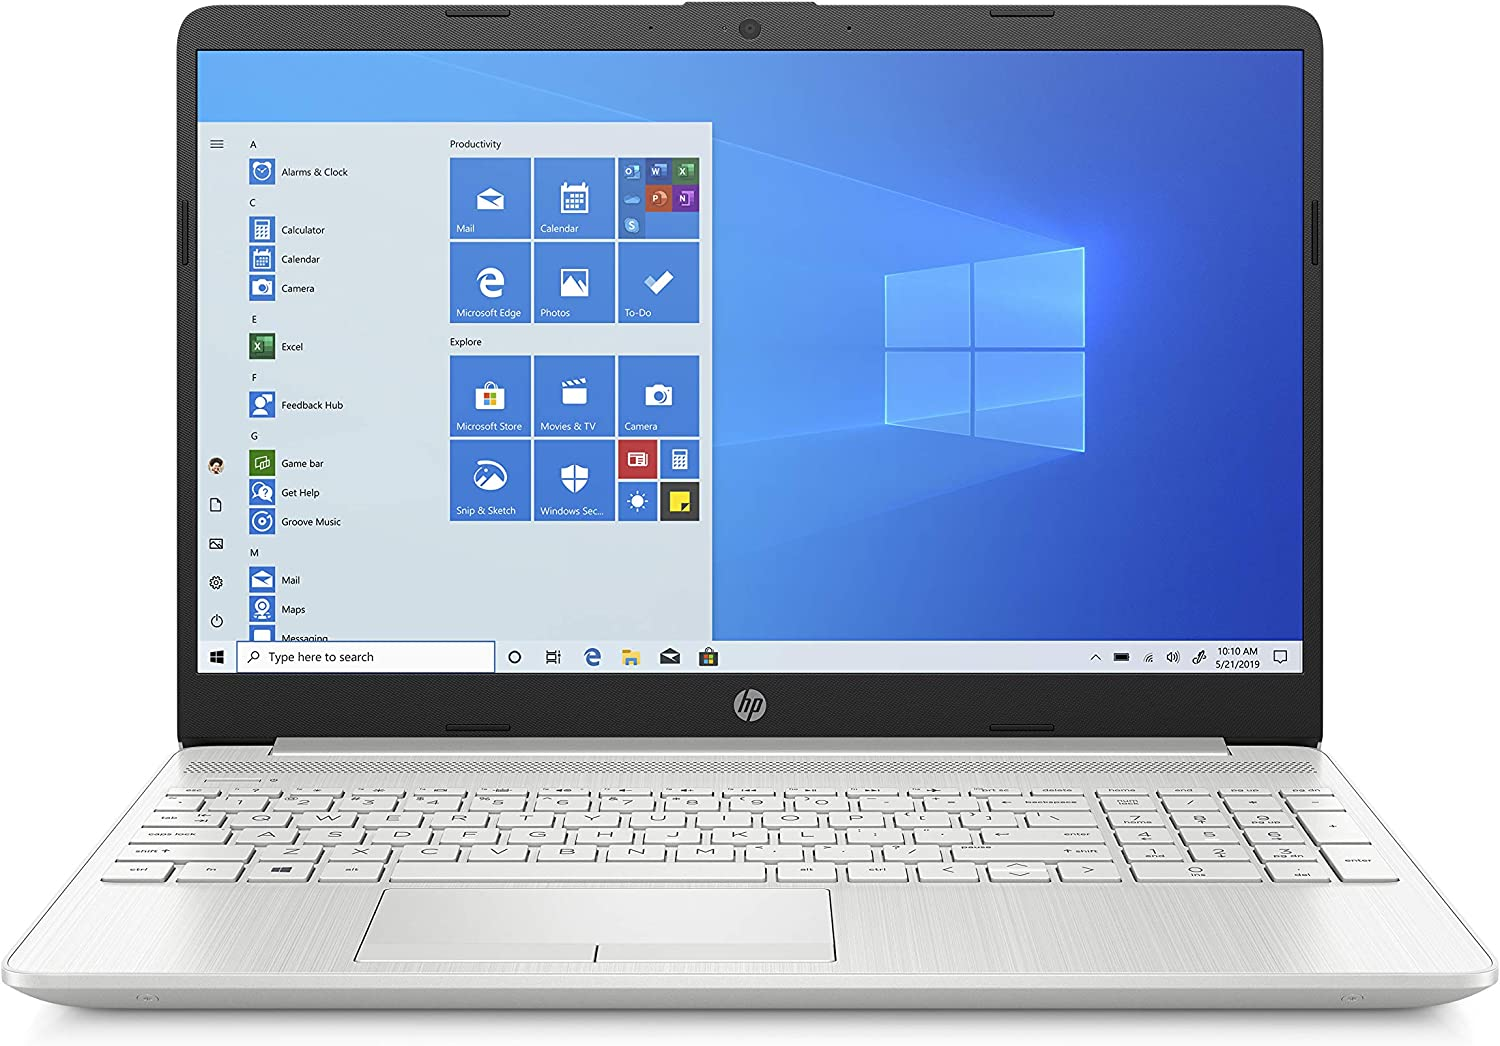 HP 15-dw2081ne Laptop, 15 inches FHD, 10 Gen Intel® Core™ i5 processor